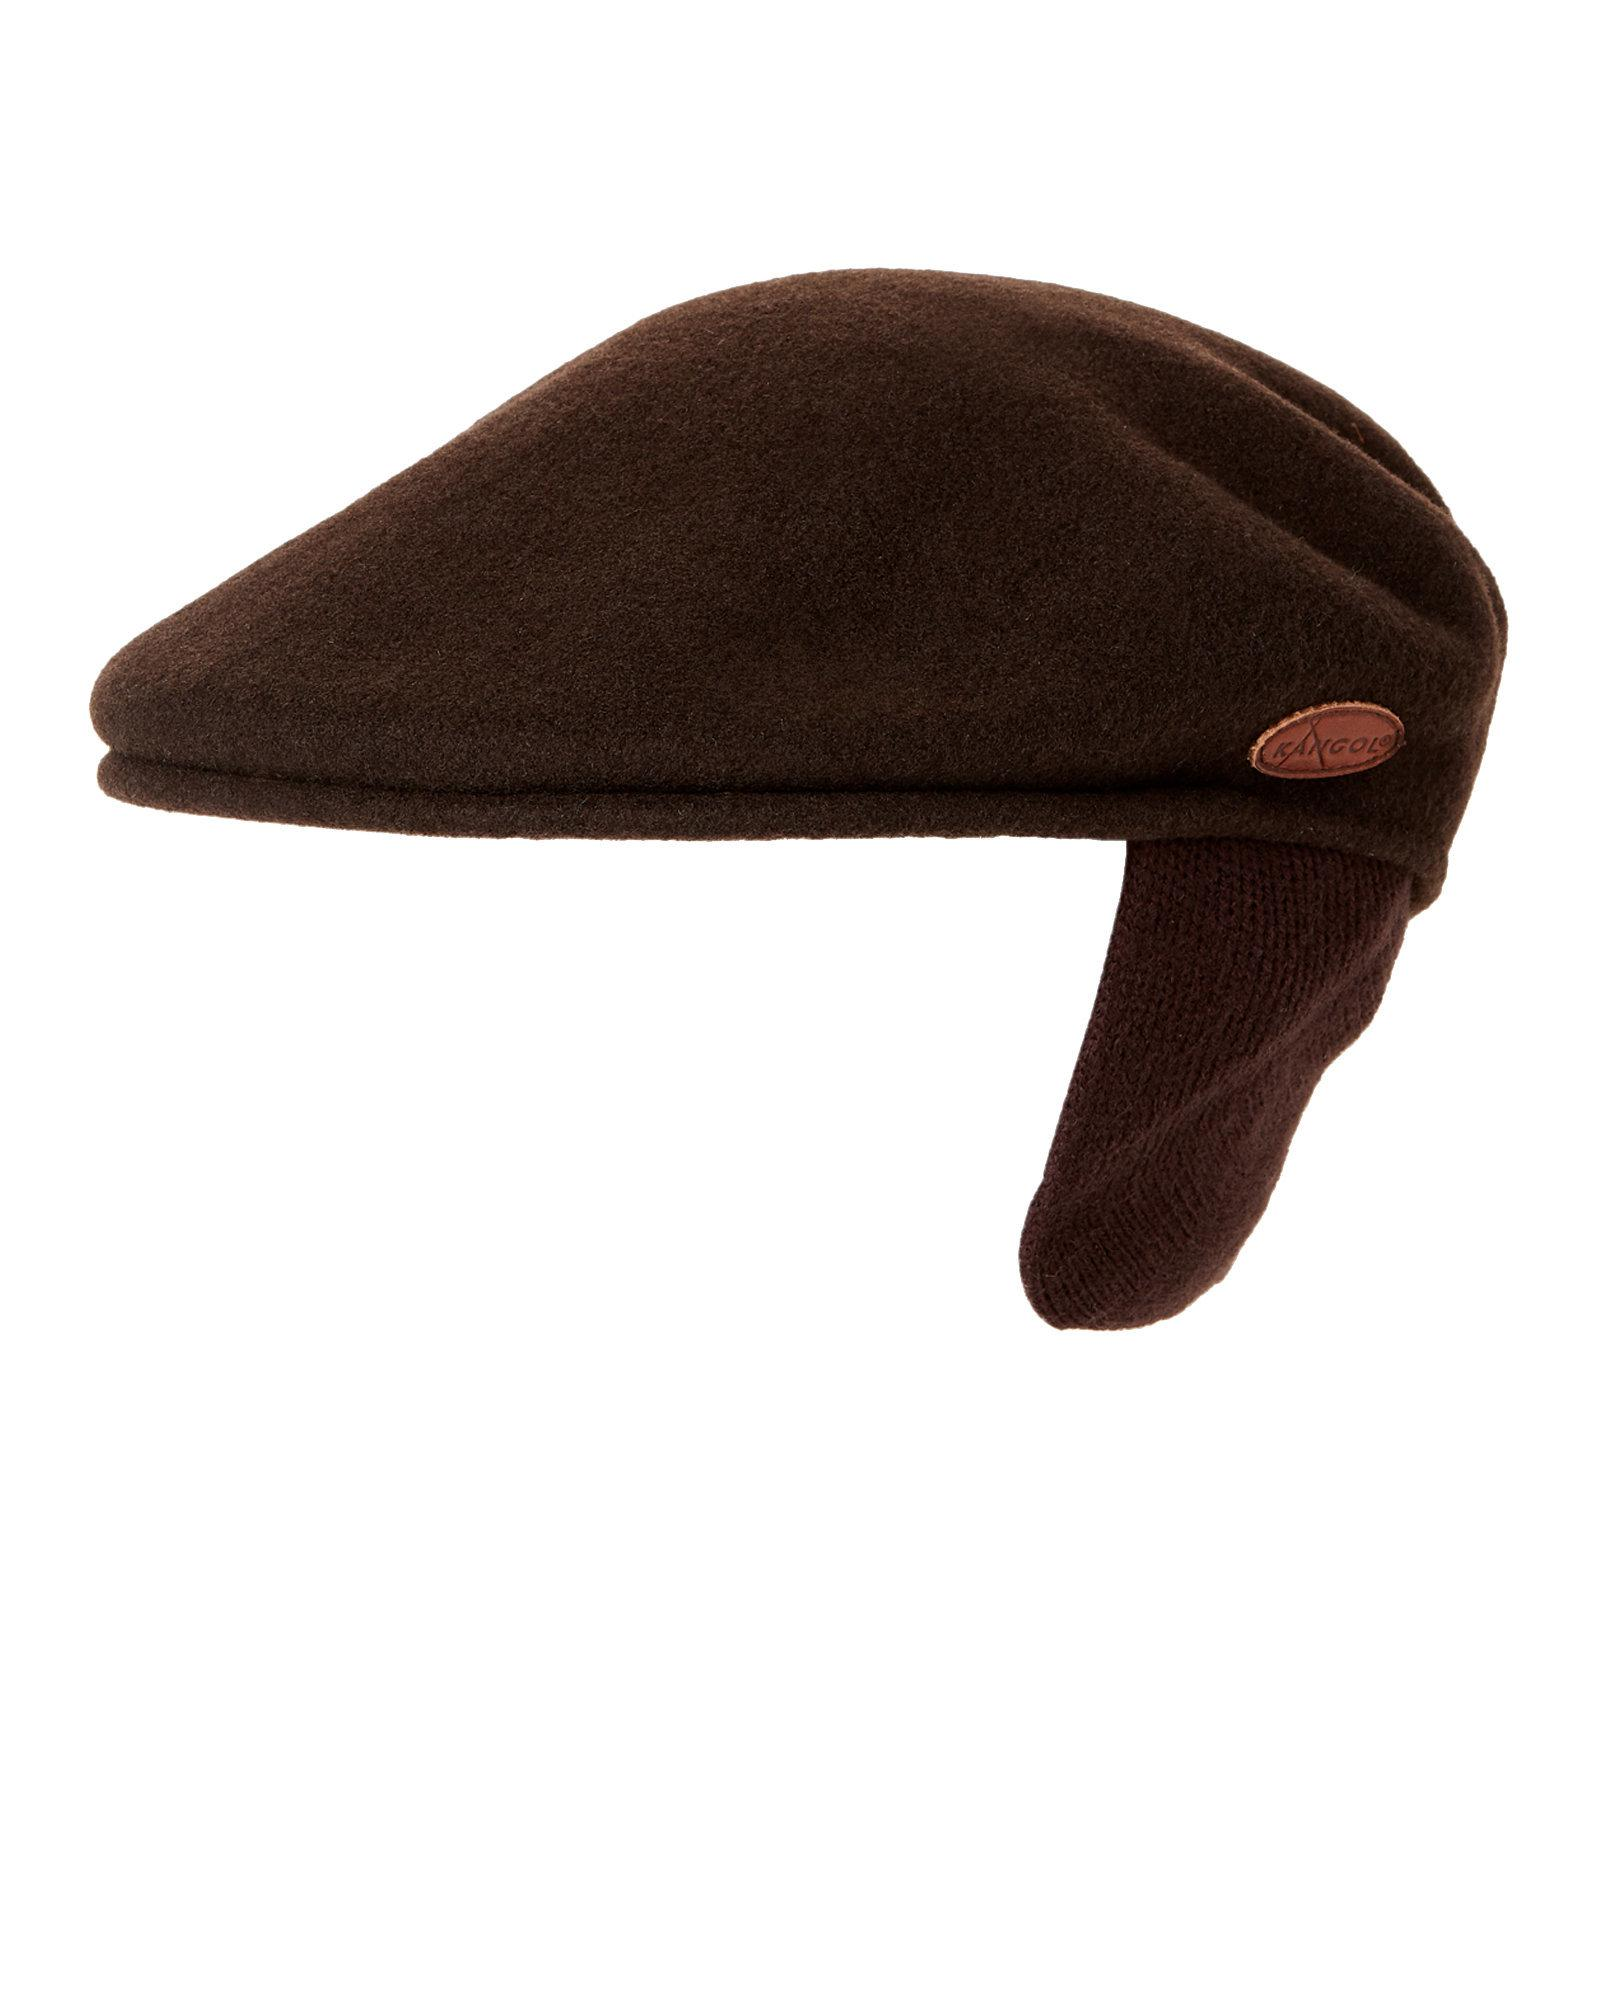 08b41c957d48e Lyst - Kangol 504 Earflap Ivy Cap in Brown for Men